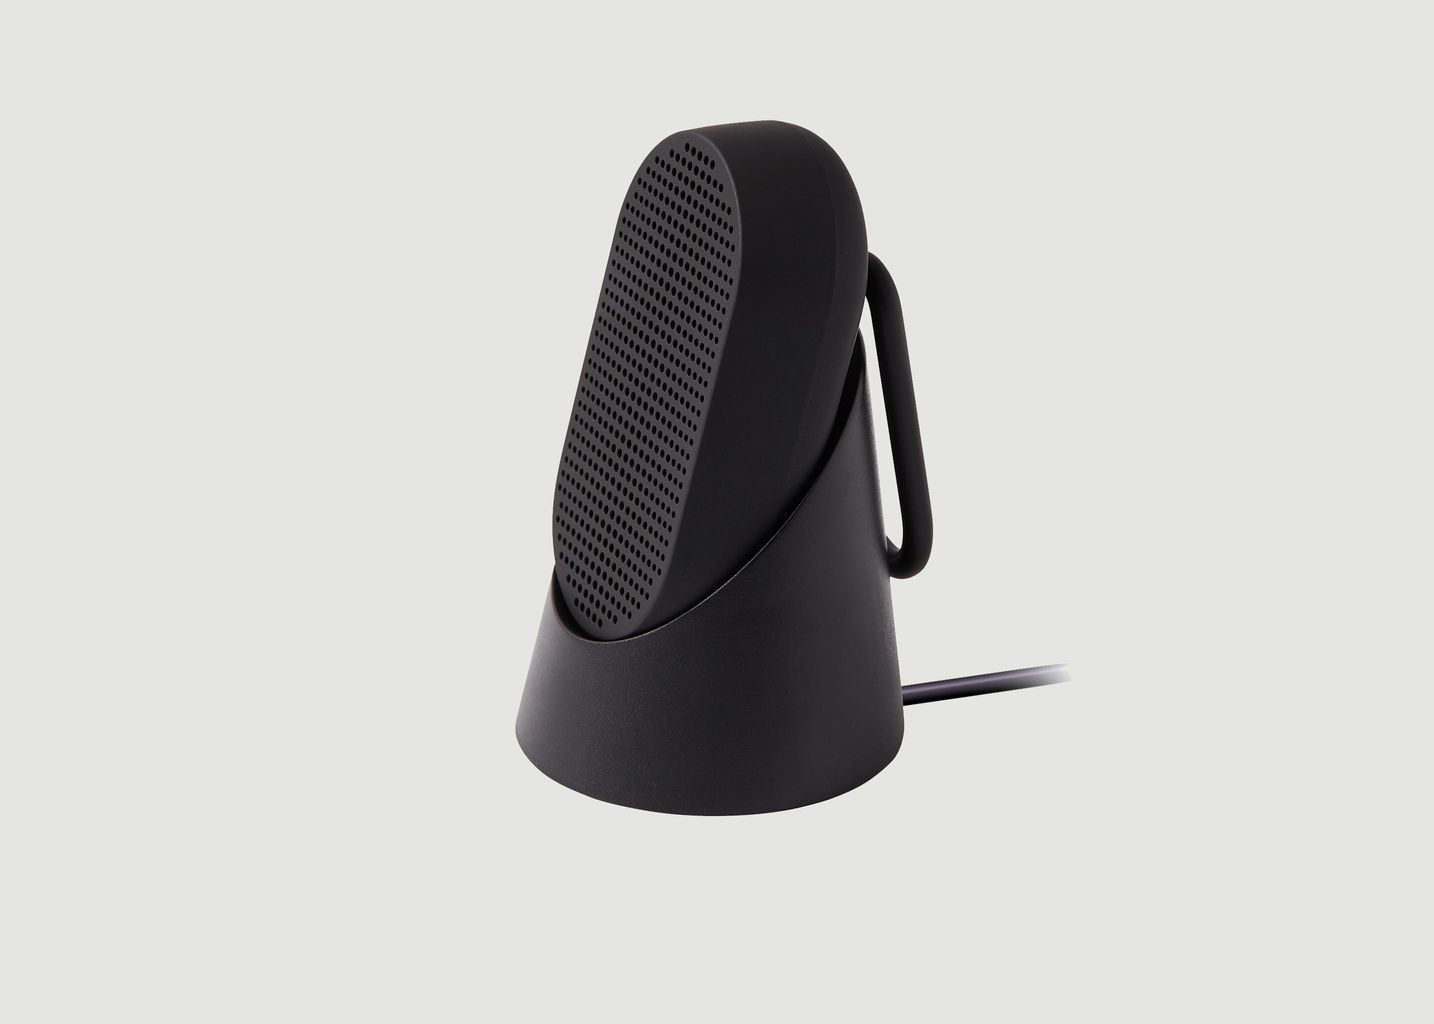 Mini Enceinte Bluetooth Mino avec mousqueton - Lexon Design